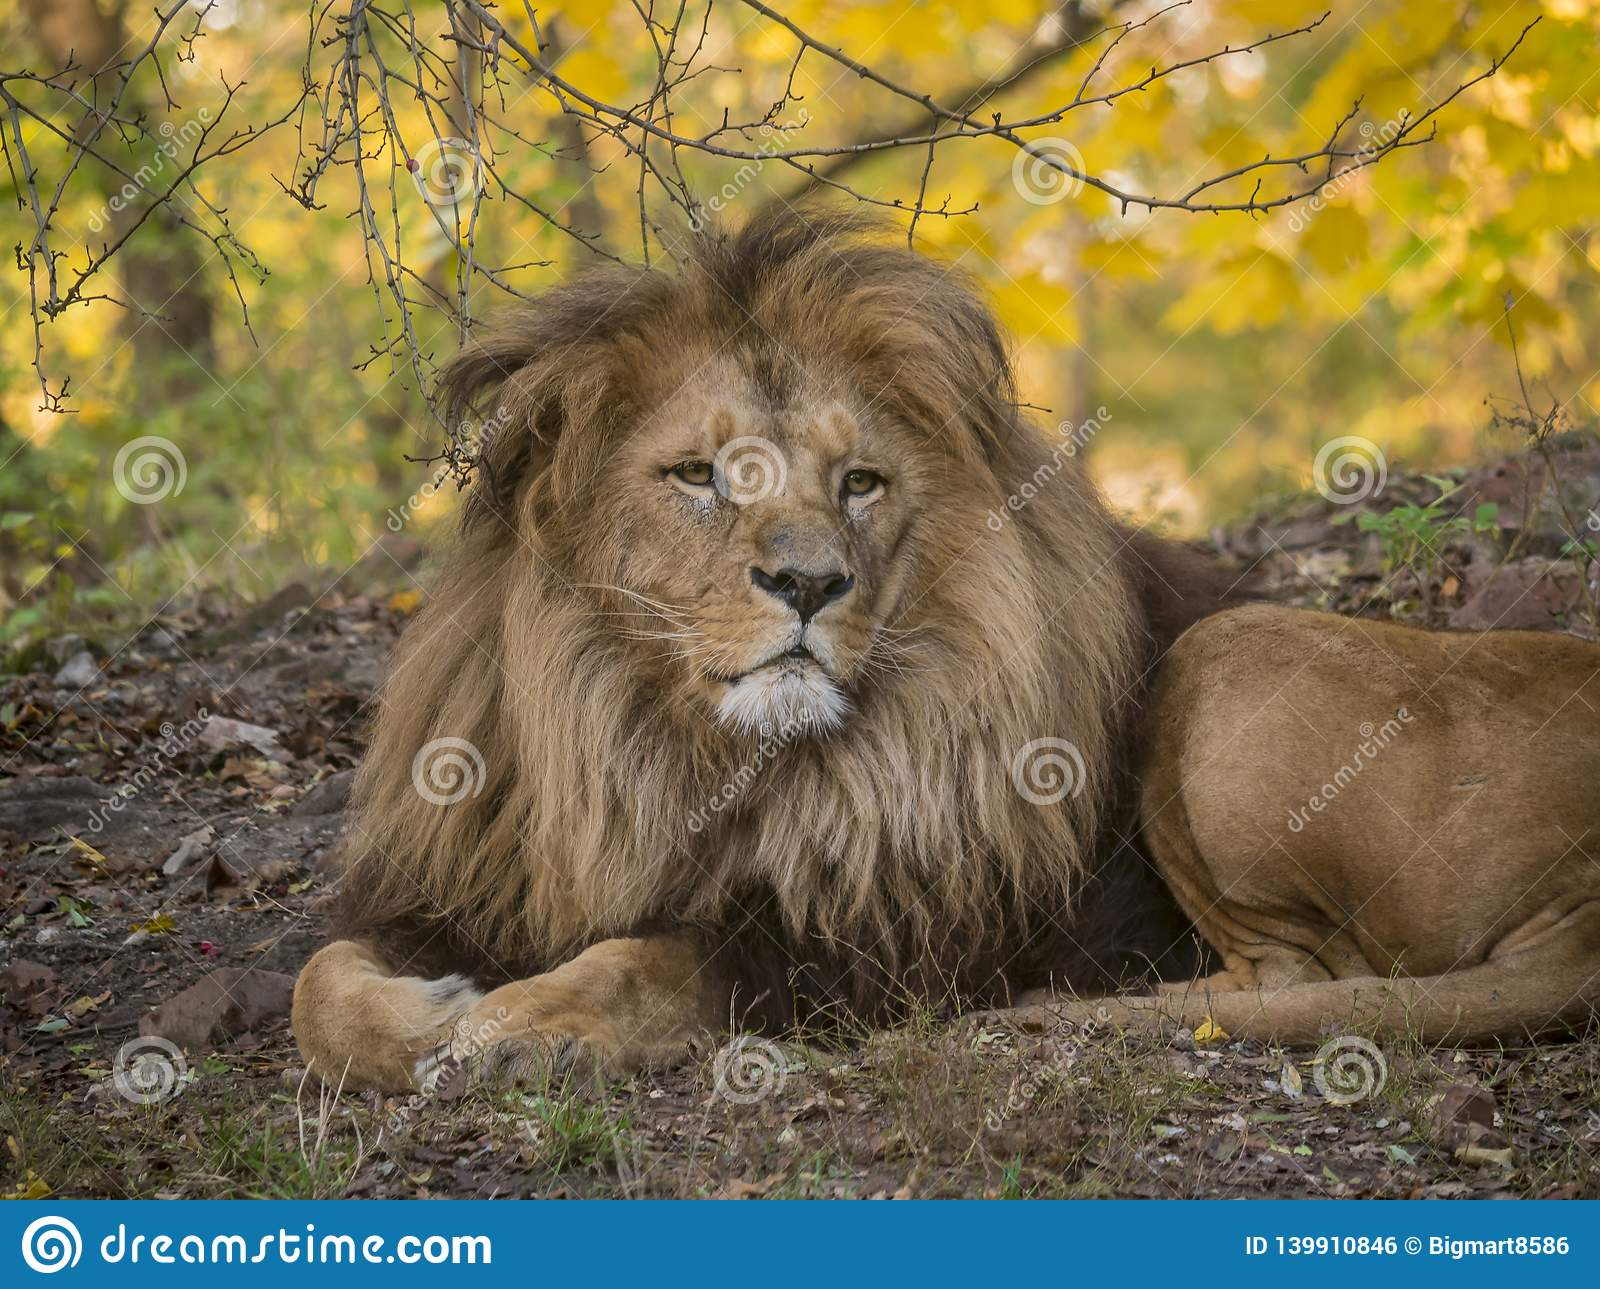 Lion male relaxing portrait view in yellow colors